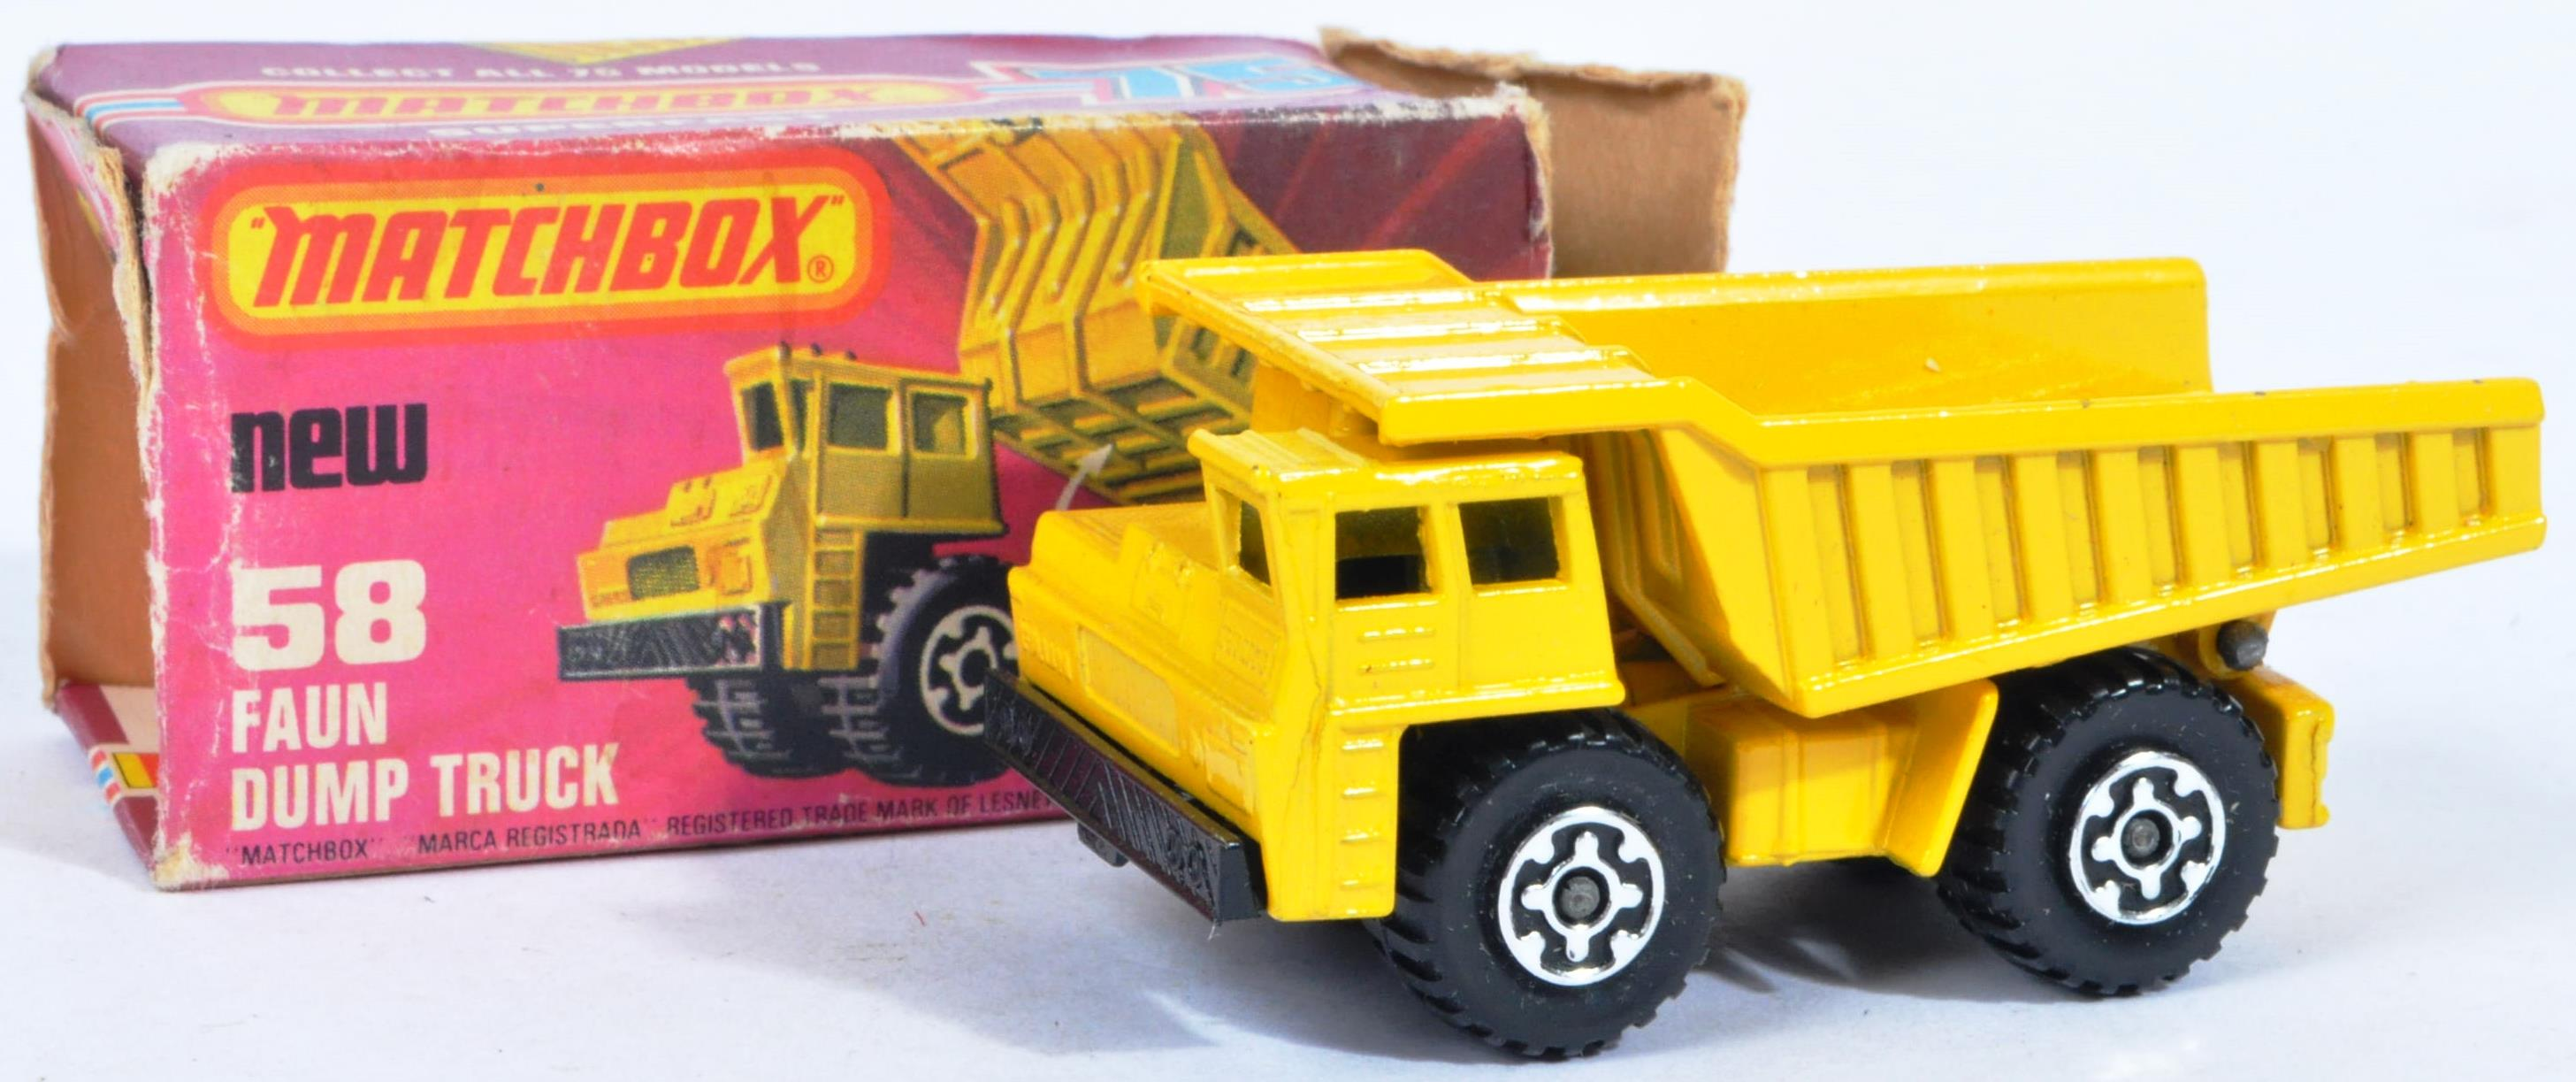 LARGE COLLECTION OF LESNEY MATCHBOX DIECAST MODELS - Image 6 of 8